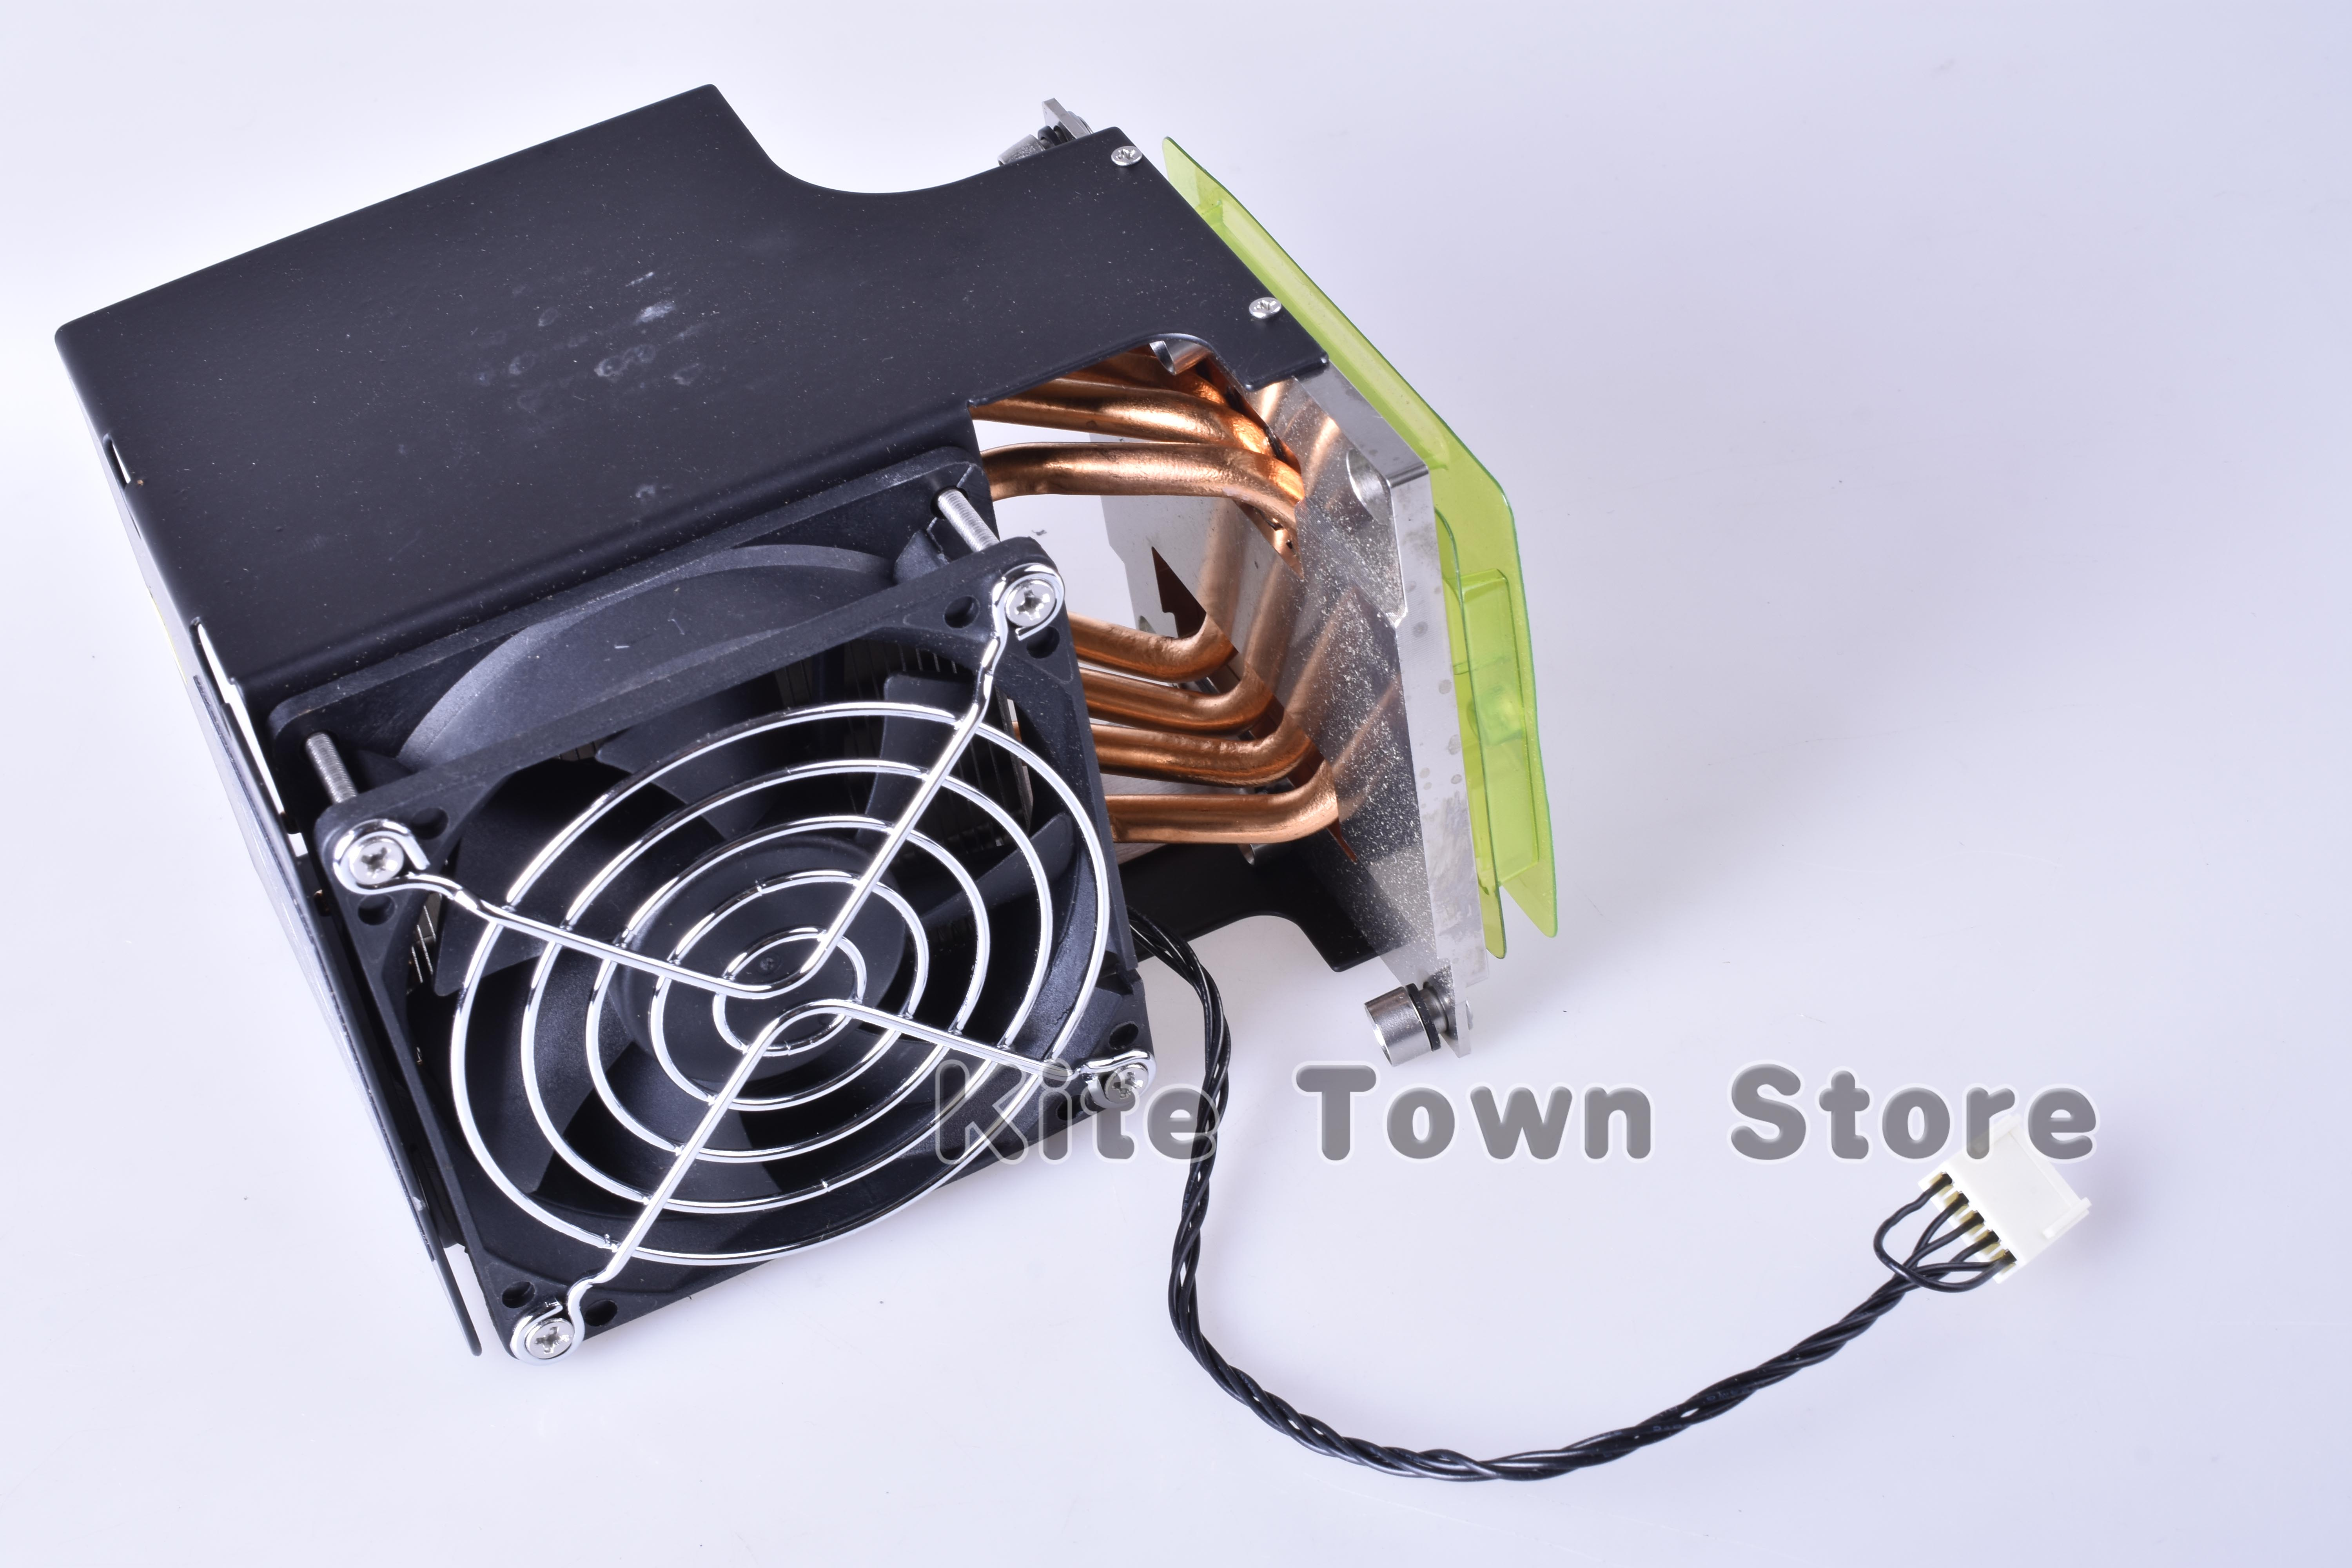 CPU Heatsink for HP Z8 G4 Graphics Workstation No.2 Position 0P605235 w//Cage US